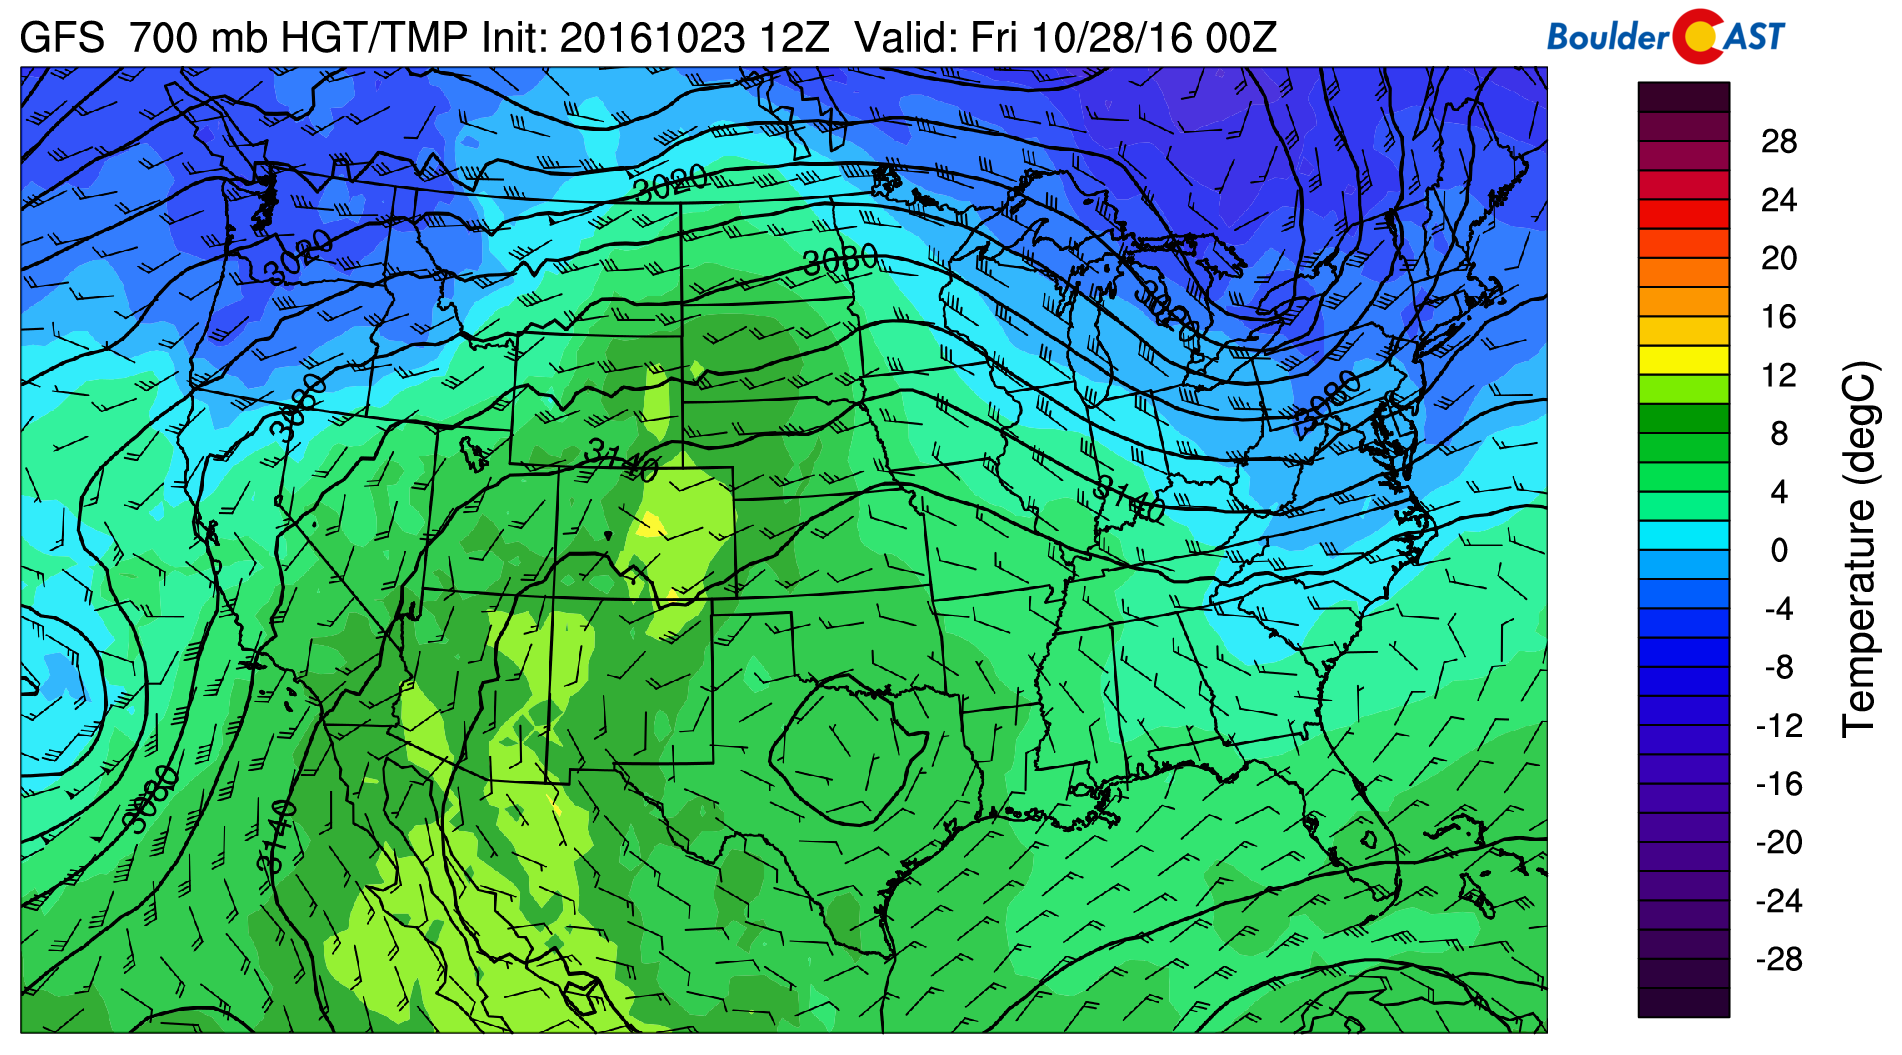 GFS 700 mb temperatures for Thursday, about 5 degrees warmer than Wednesday.